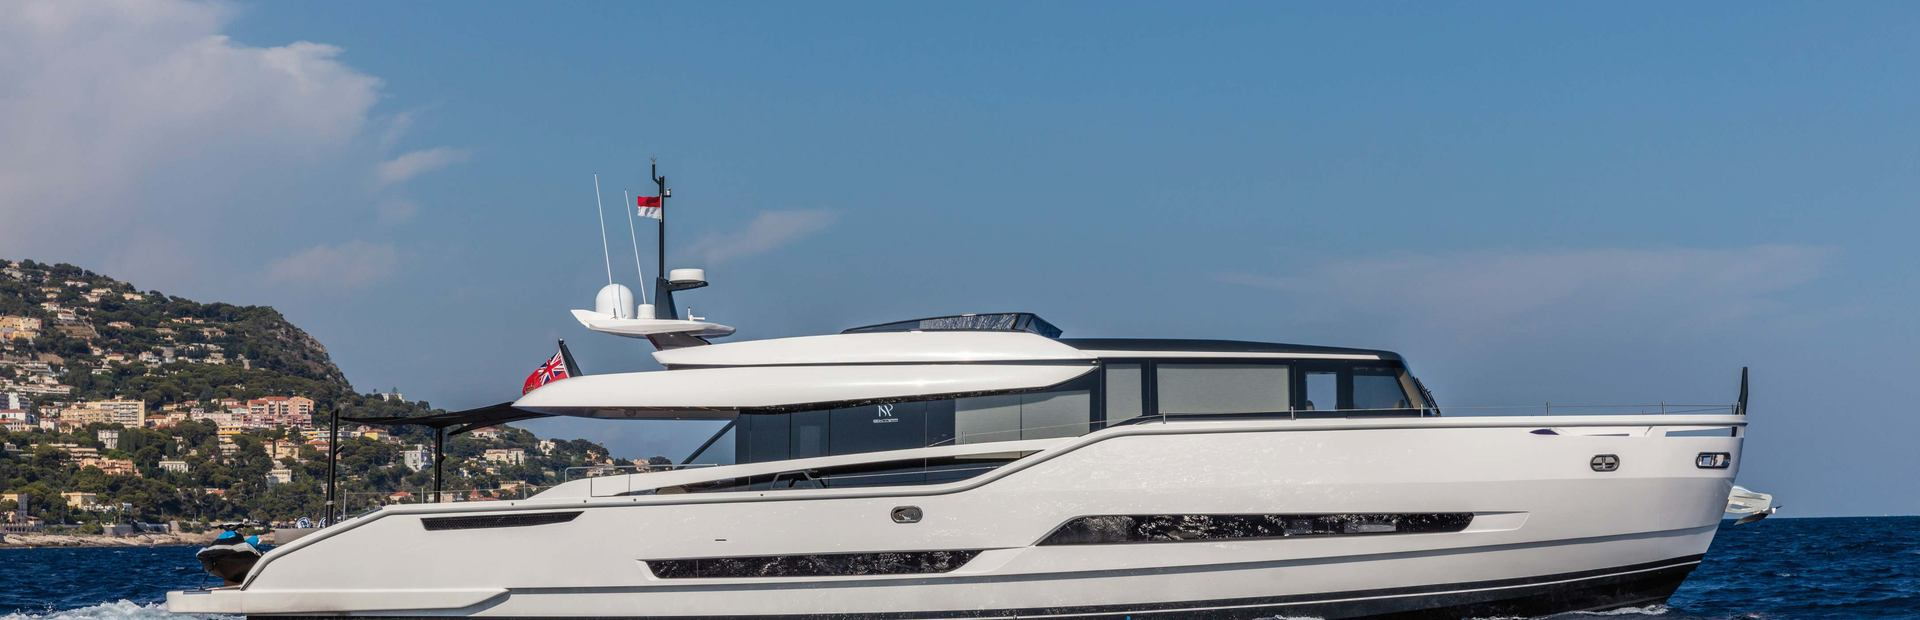 Extra 86 Fast Yacht Charter